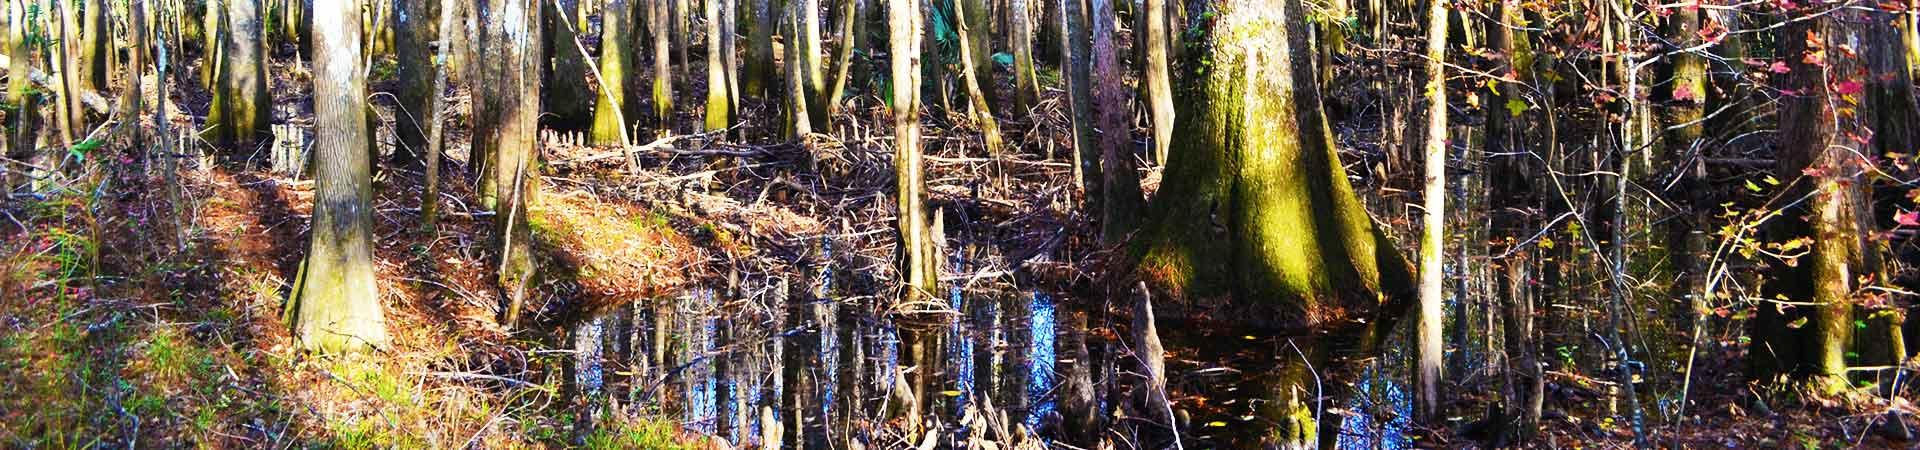 swamp and trees at Altamaha Wildlife Management Area